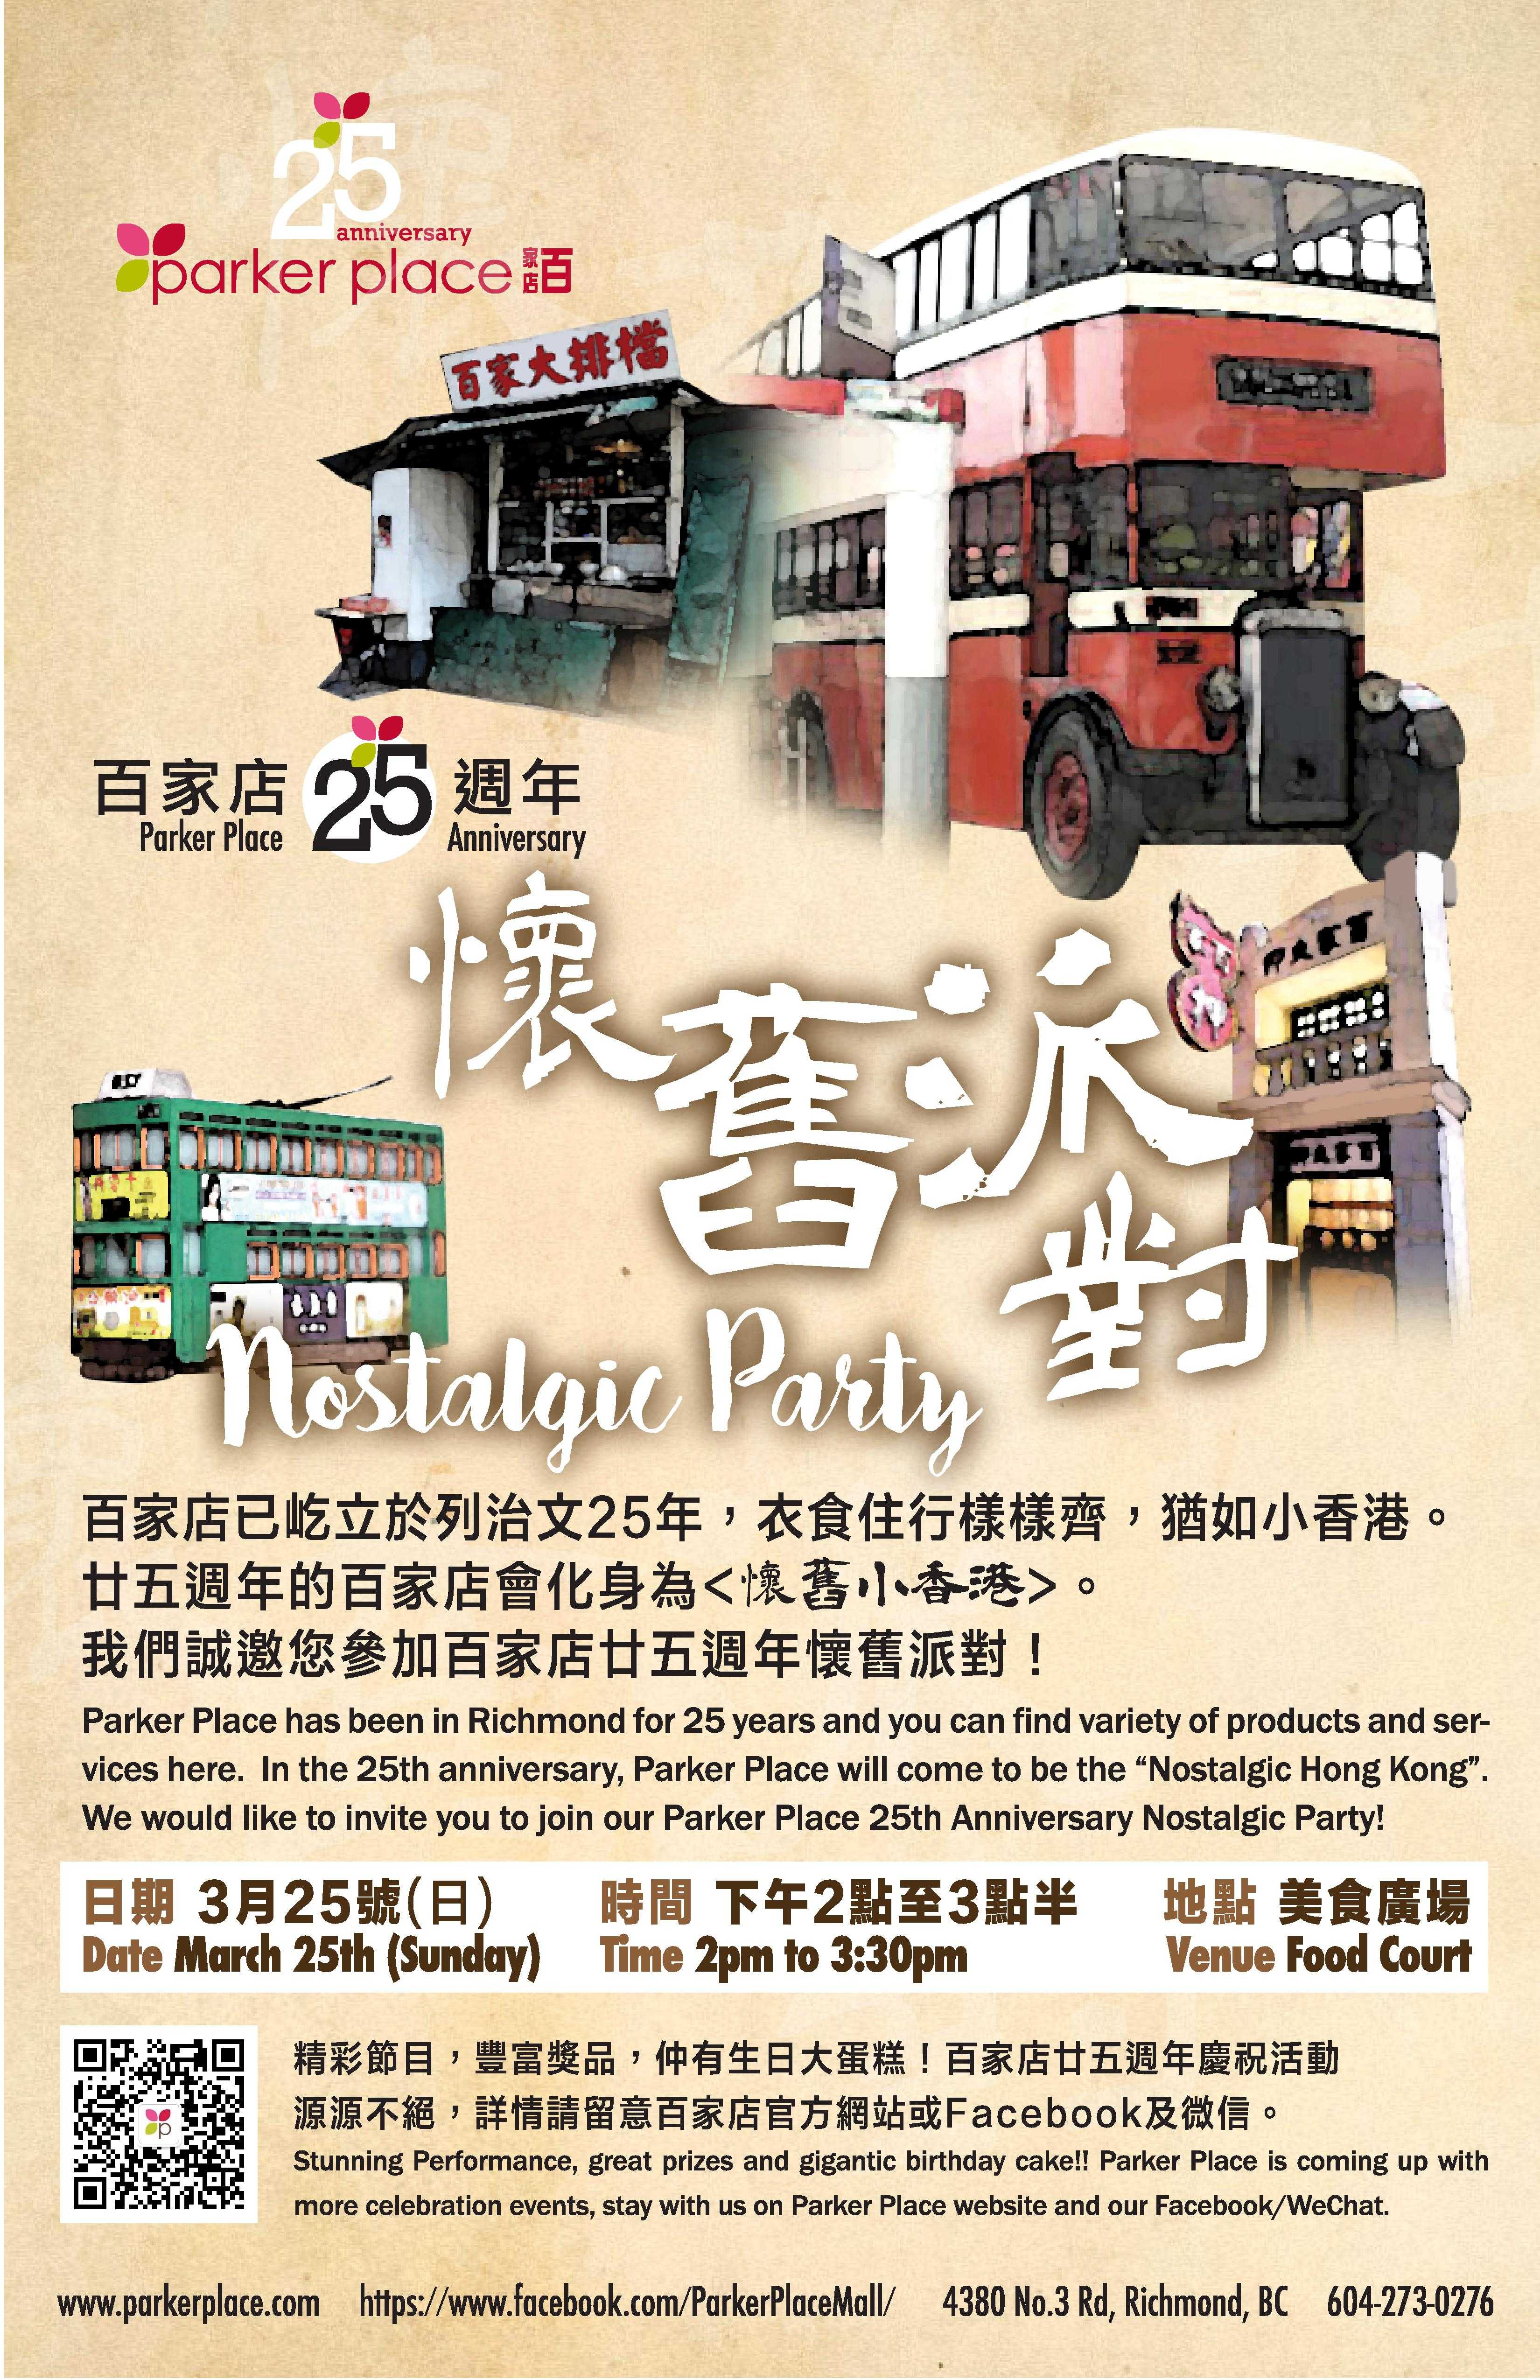 百家店廿五週年懷舊派對 Parker Place 25th anniversary Nostalgic Party